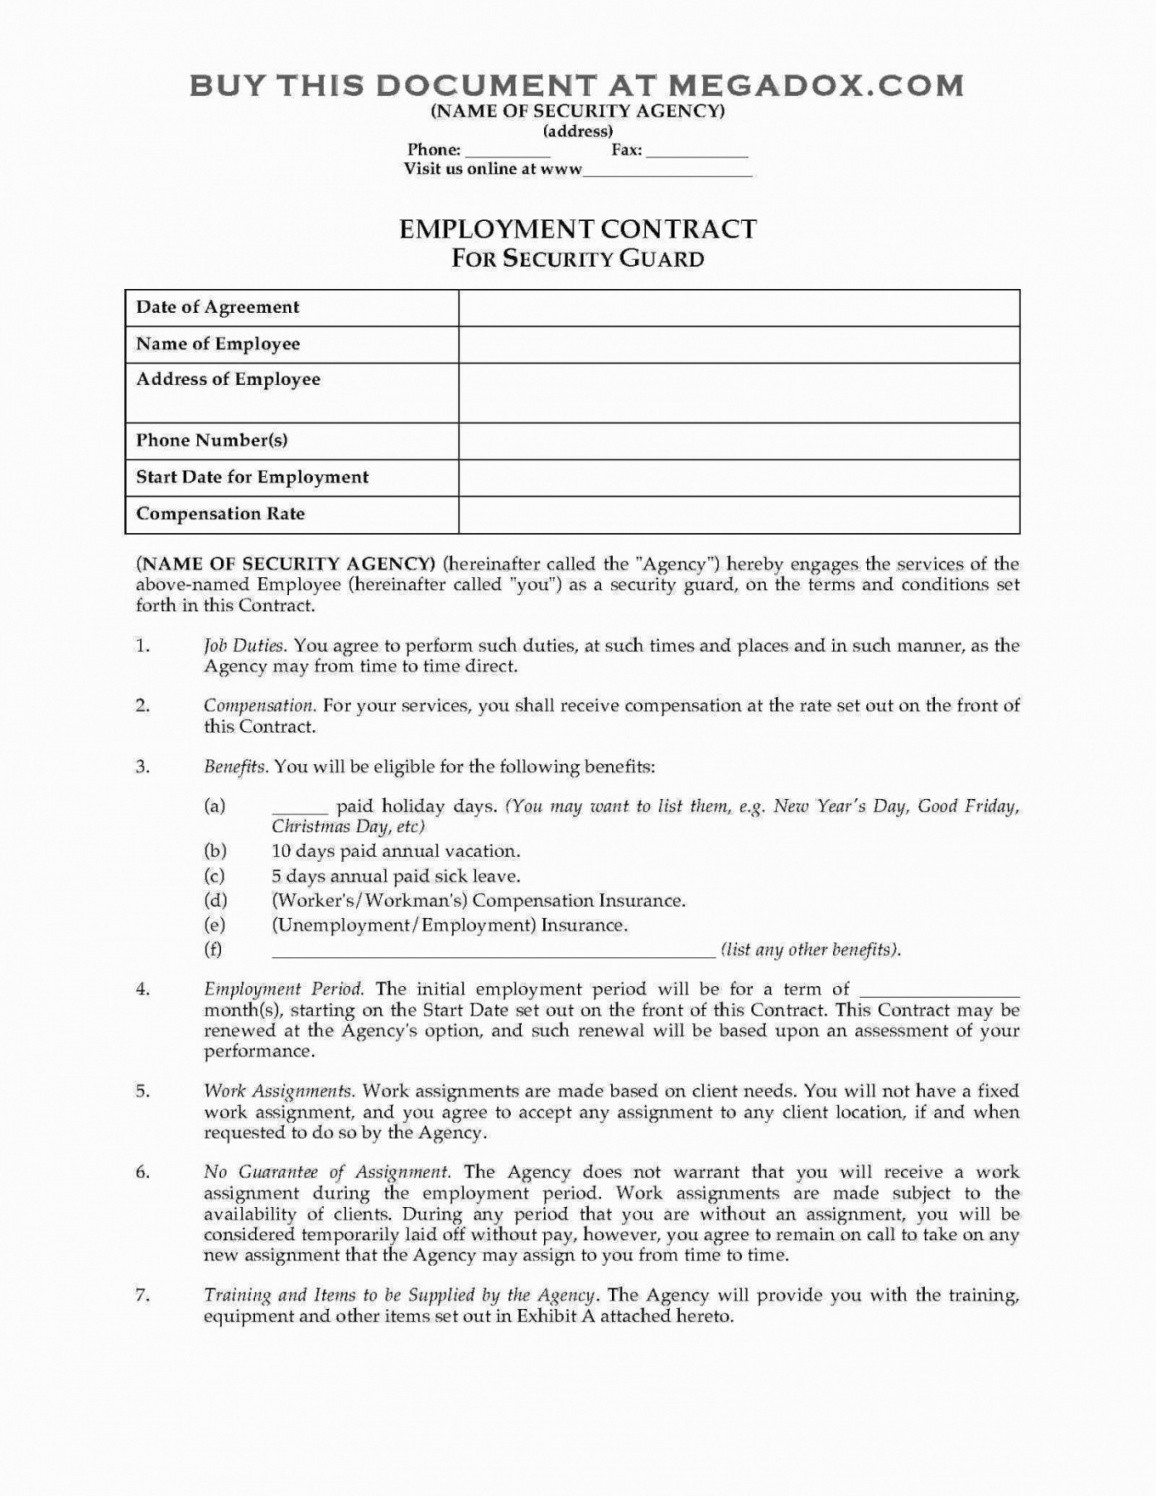 junk removal contract template  This is the Film Investment Contract Template Junk Removal ..